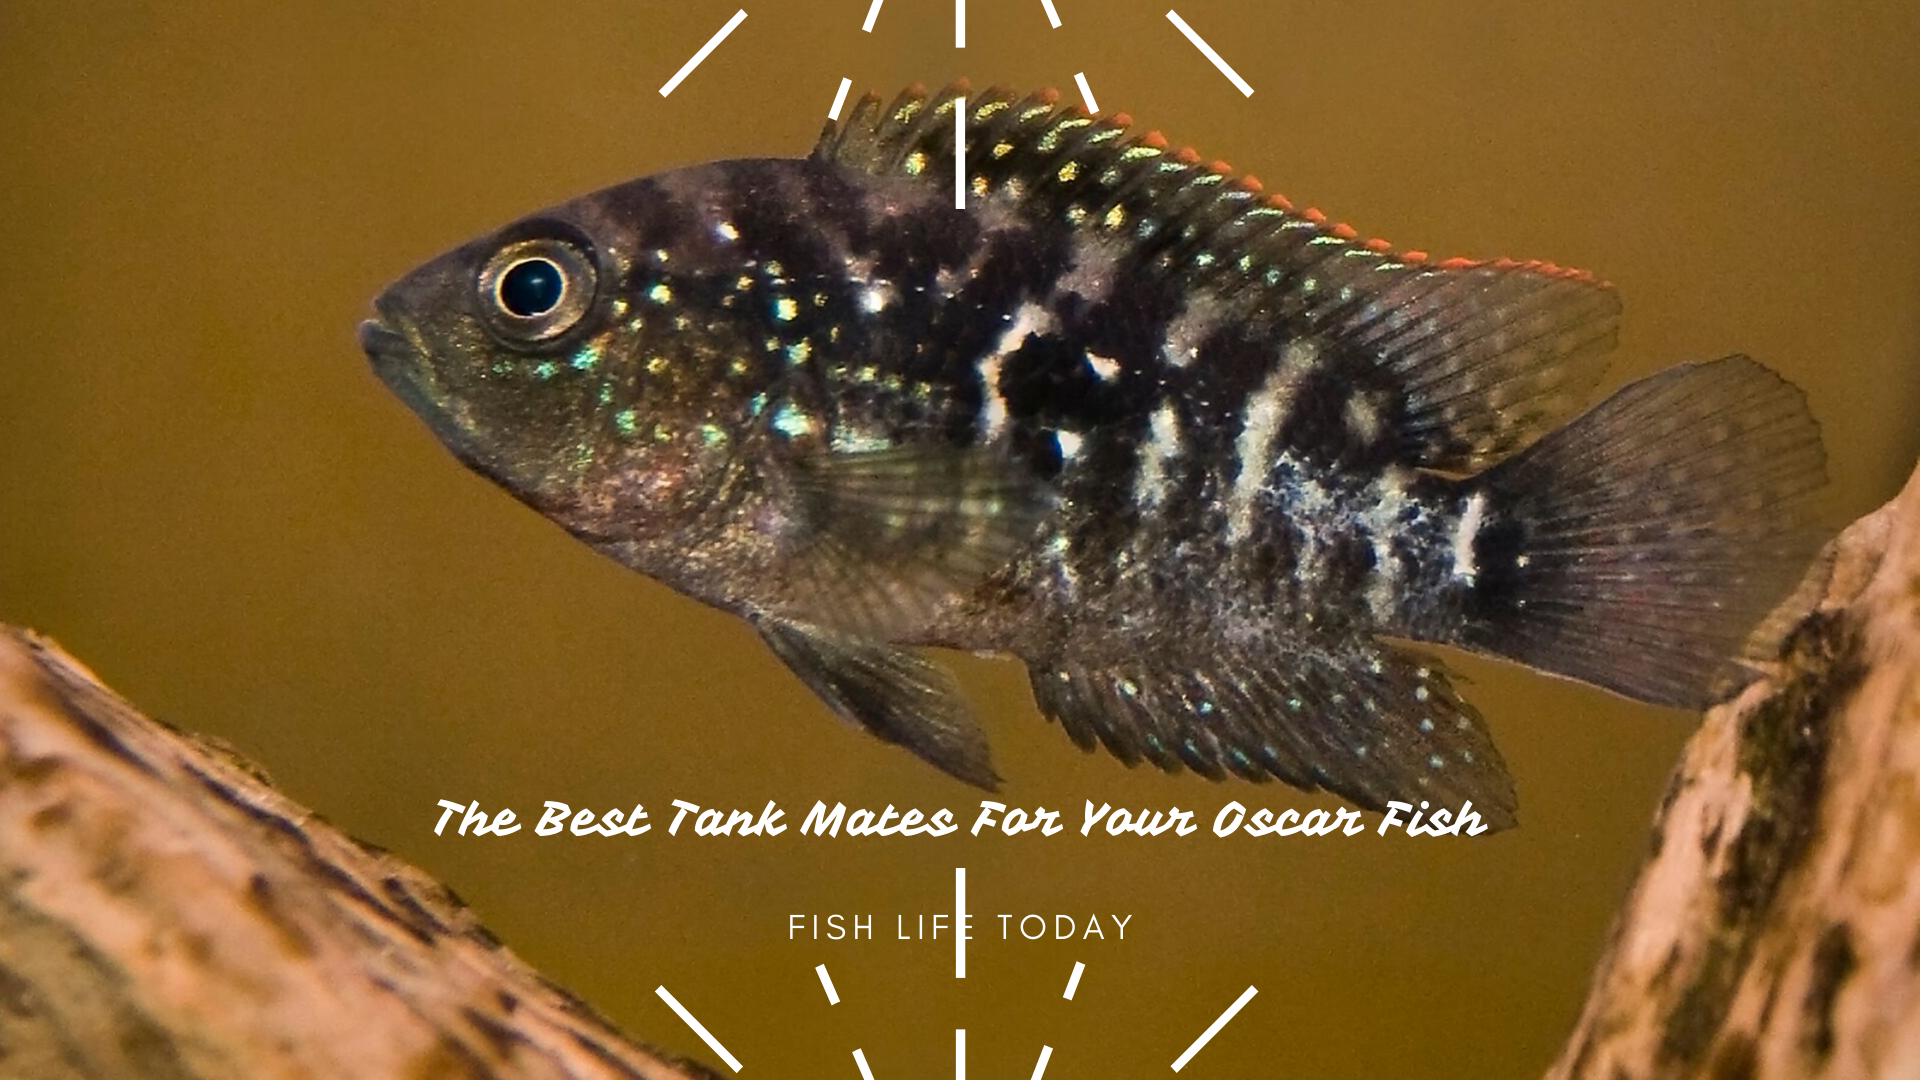 The Best Tank Mates For Your Oscar Fish